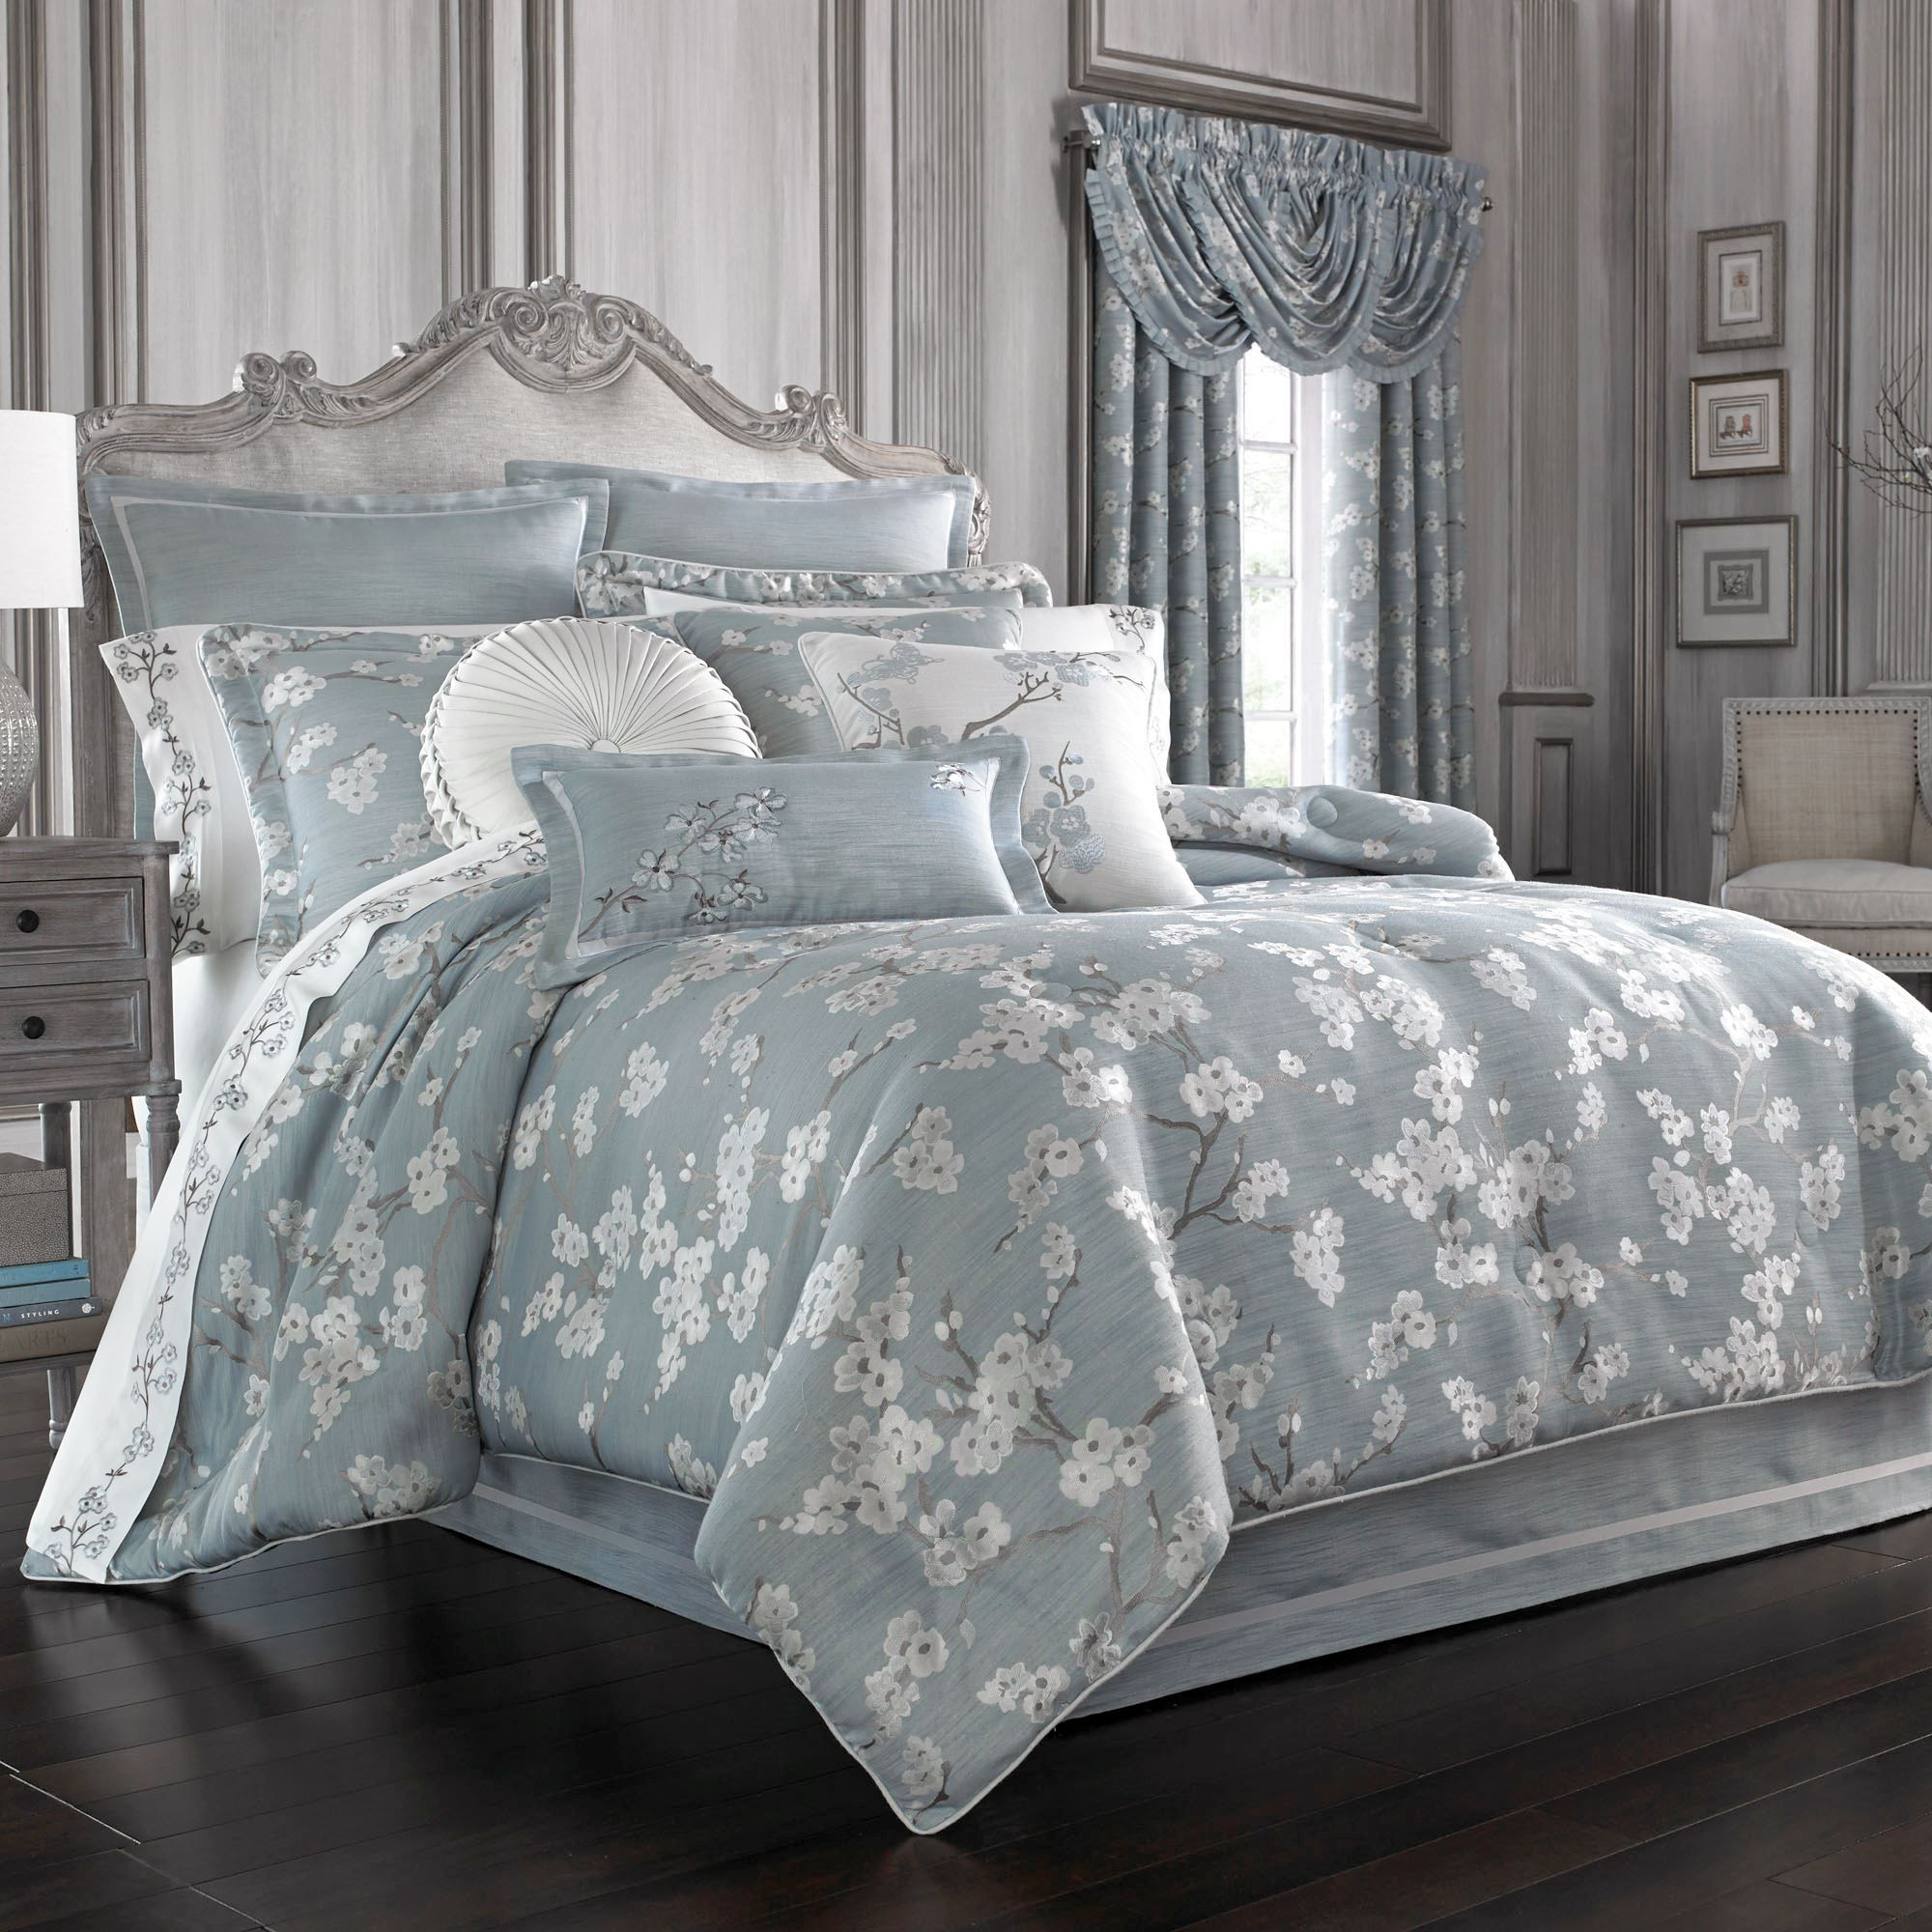 king bed large with for size bedding queen fabulous comforter bedroom sets comforters